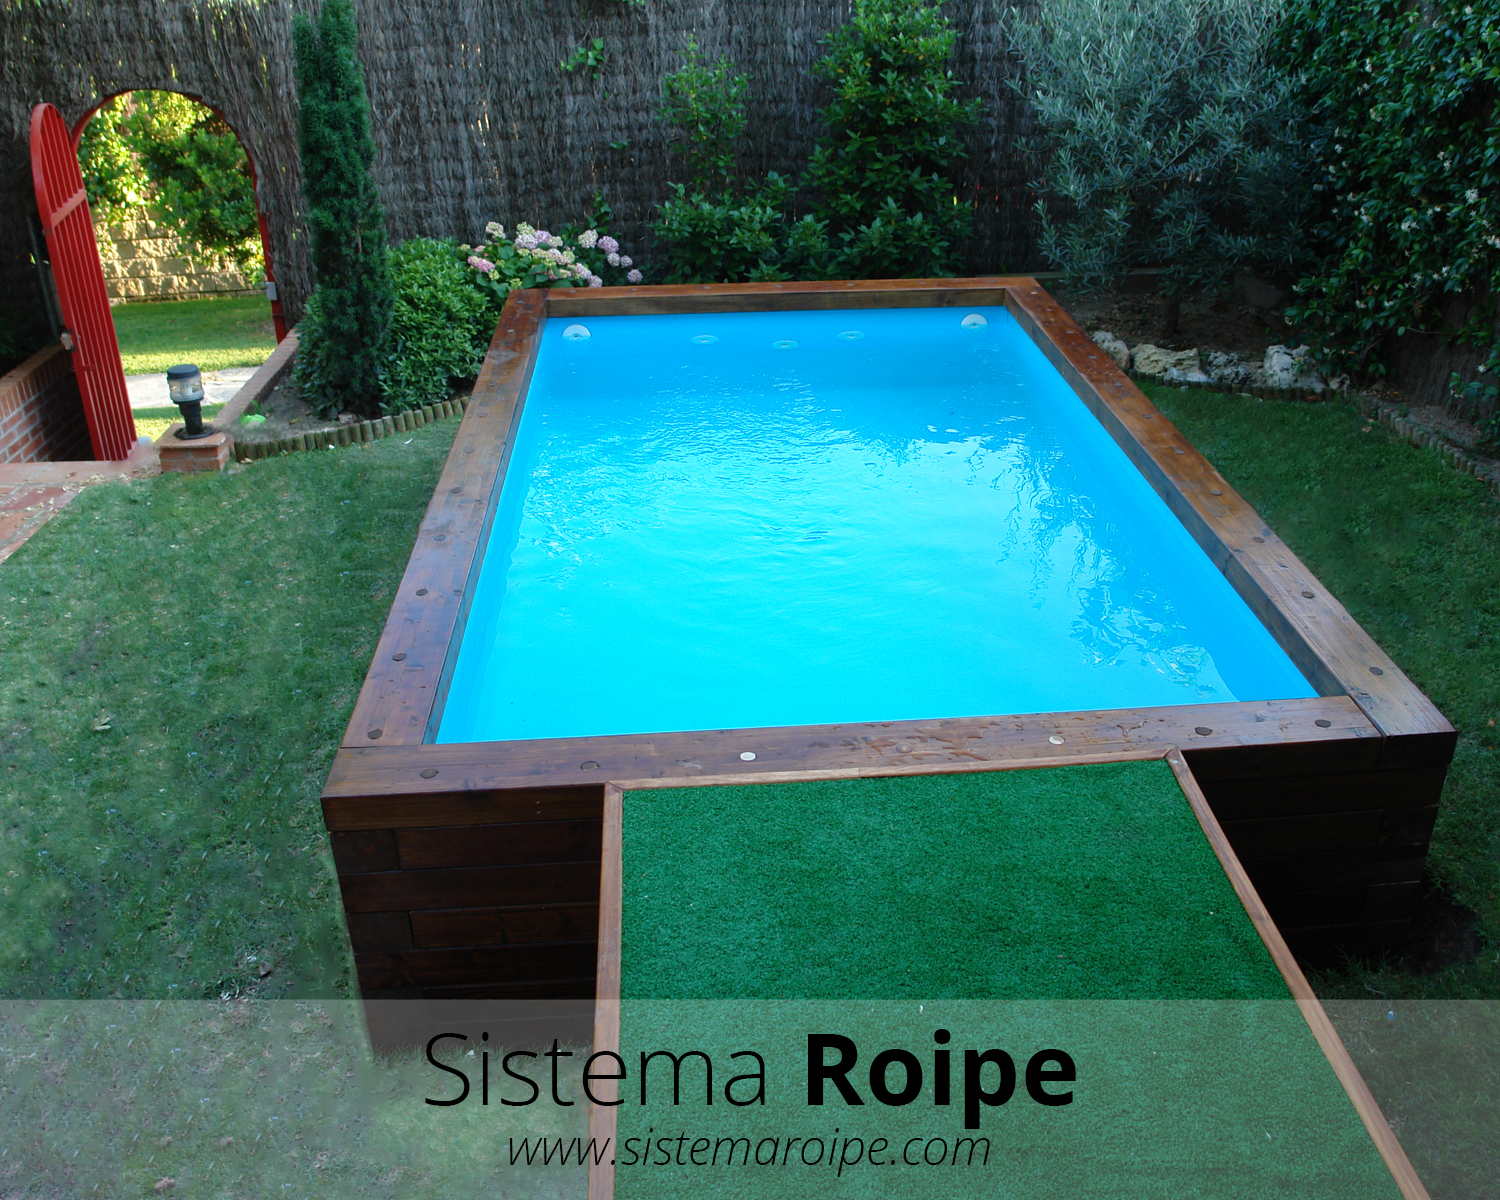 Sistema roipe for Piscinas de plastico rectangulares